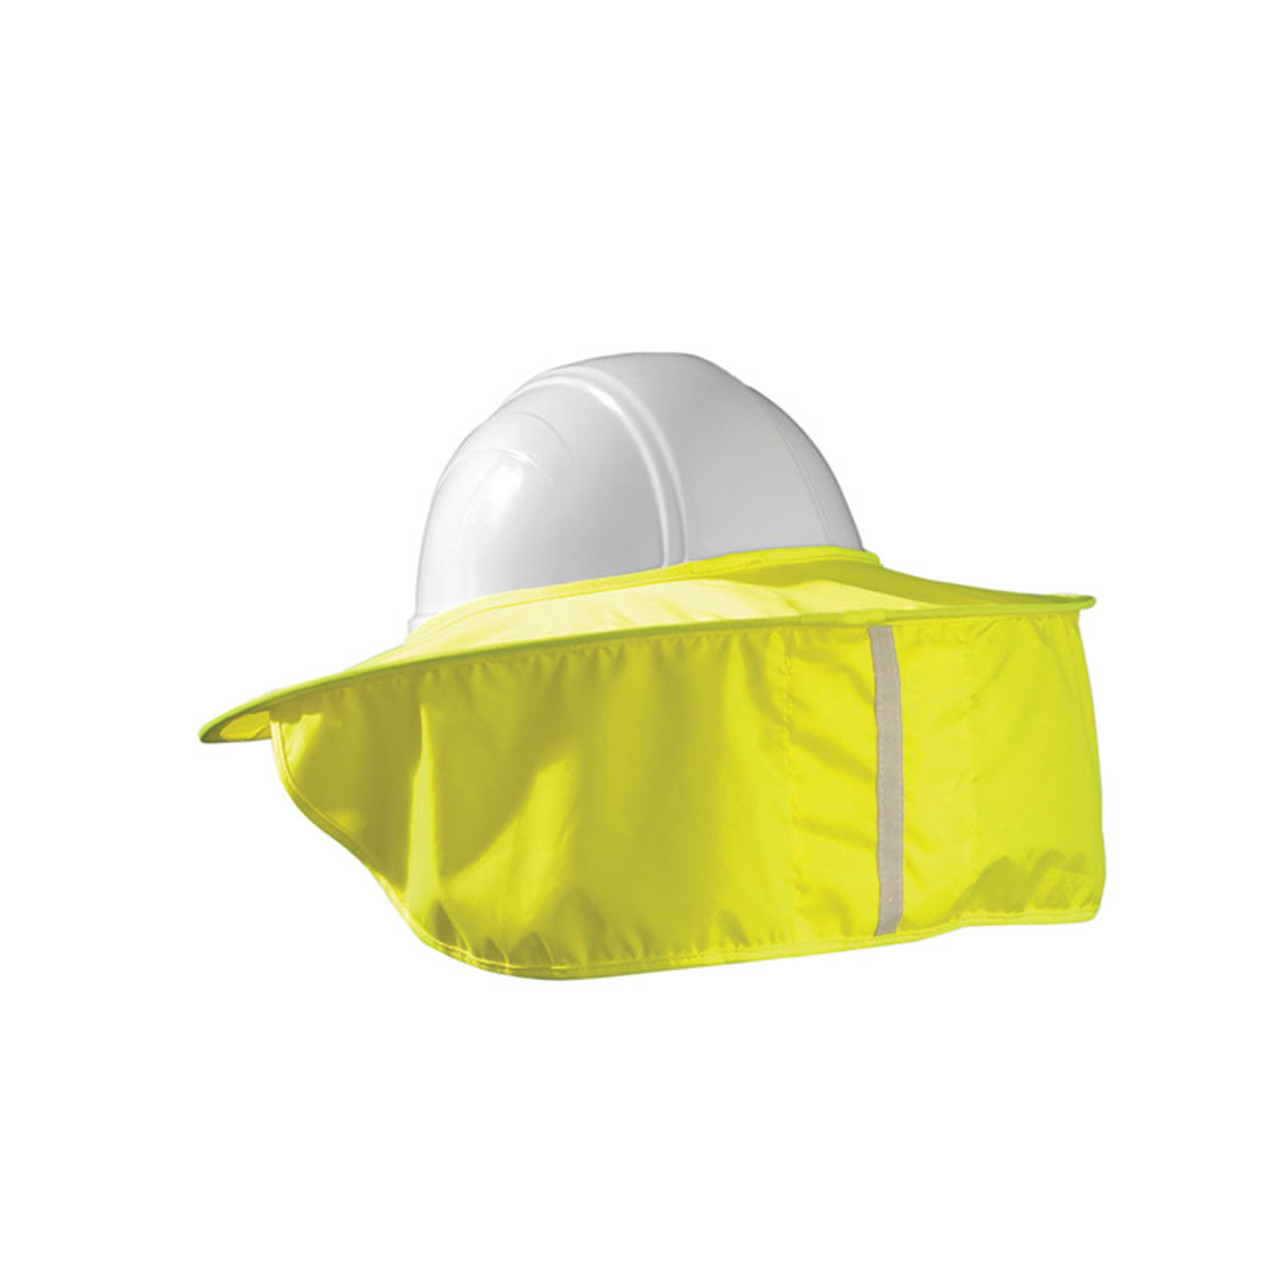 bacfd100 Occunomix Hard Hat Shade 899 Yellow